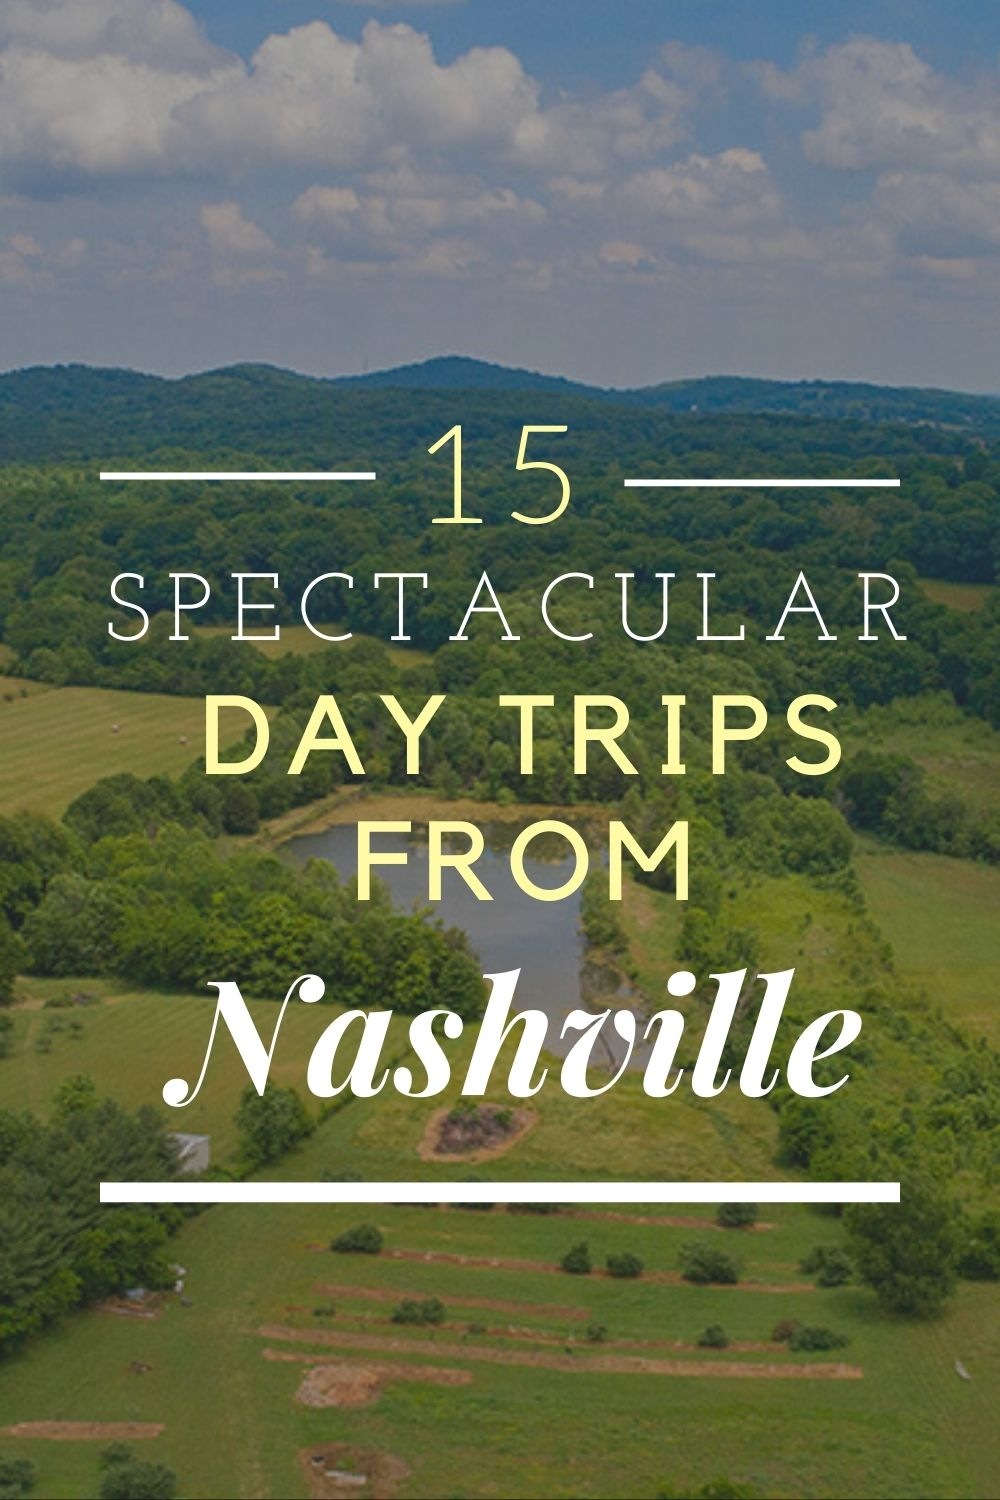 Tennessee Travel: The Best Day Trips from Nashville